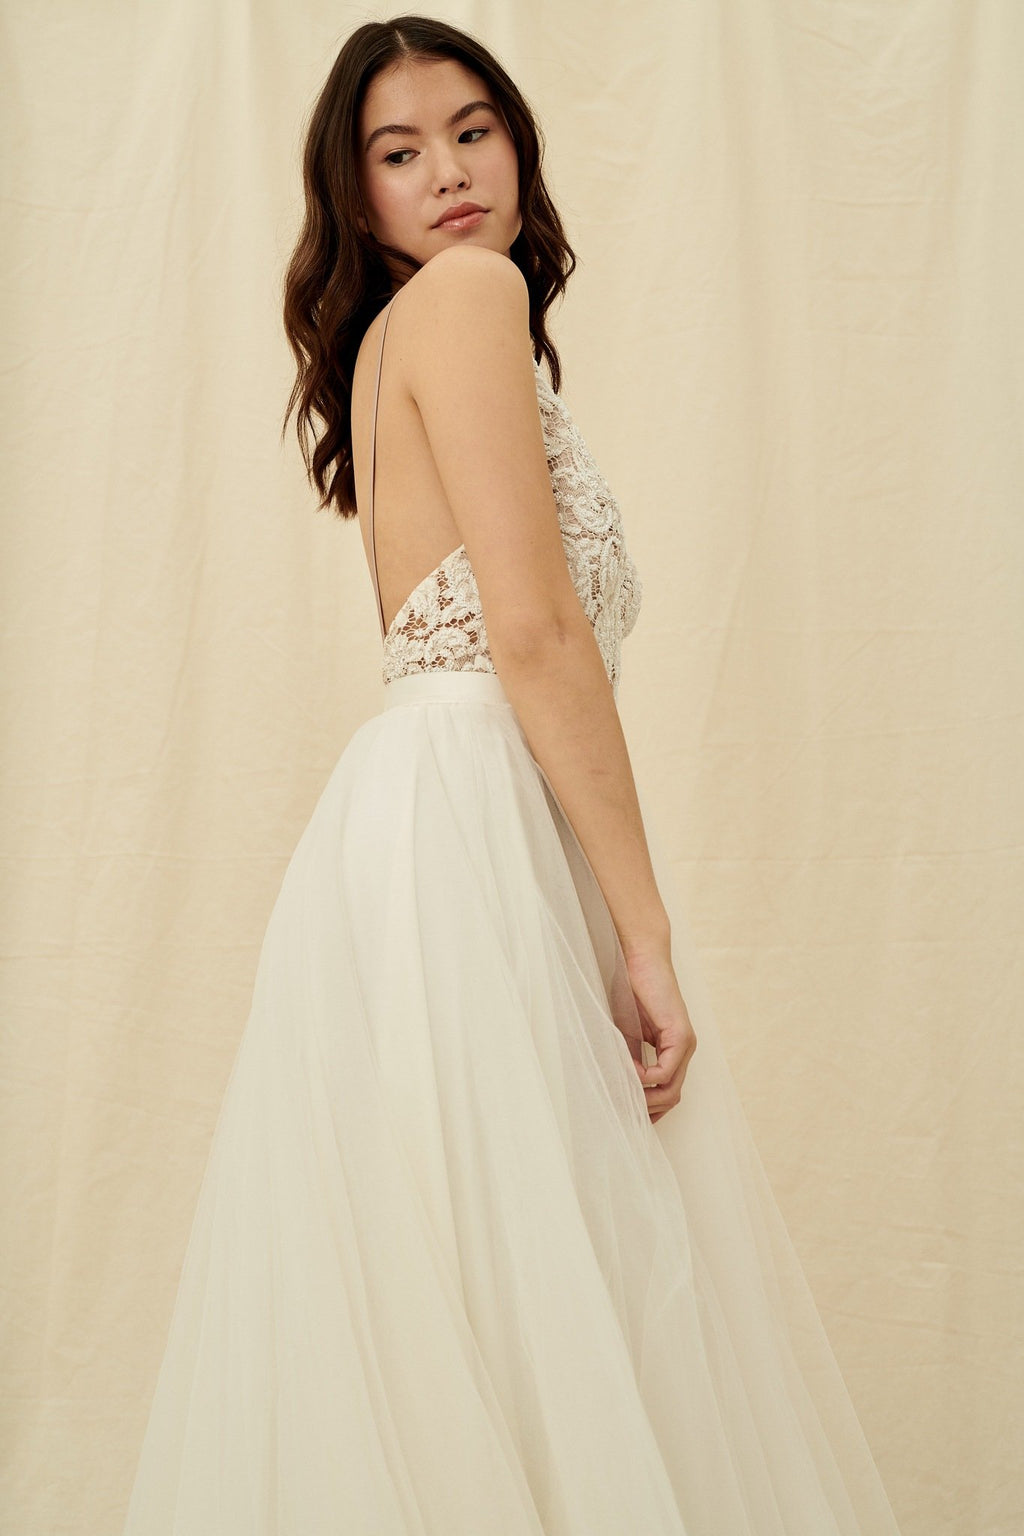 A princess wedding gown with a beaded bodice, open back, and tulle skirt with a train by Truvelle